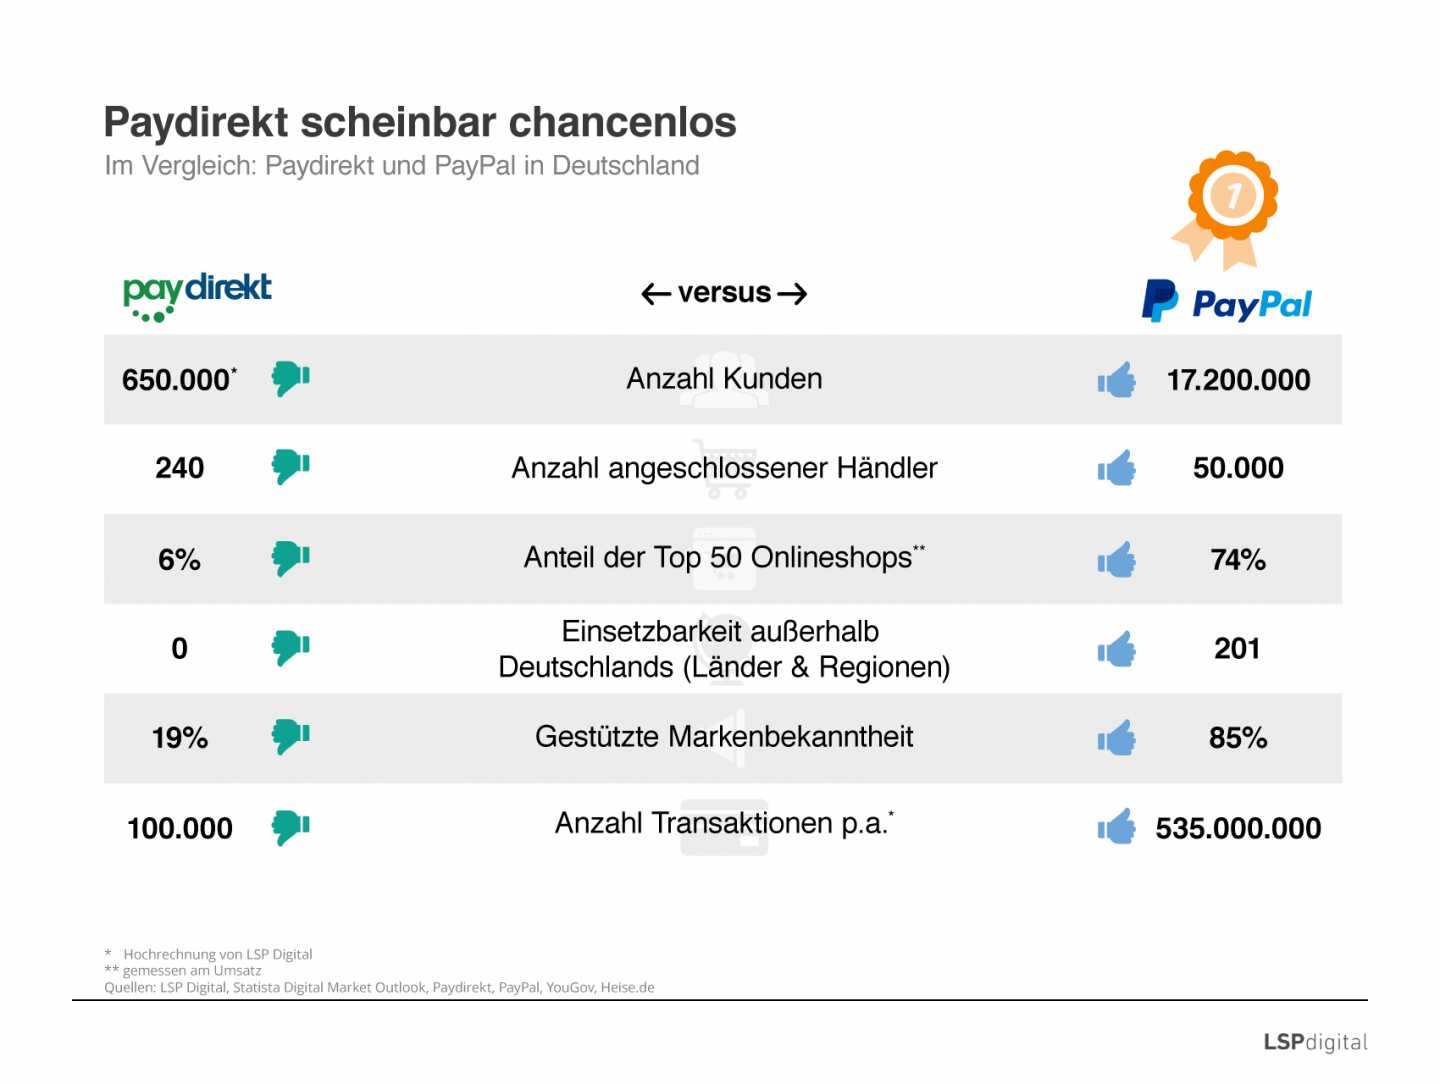 paydirect chancenlos